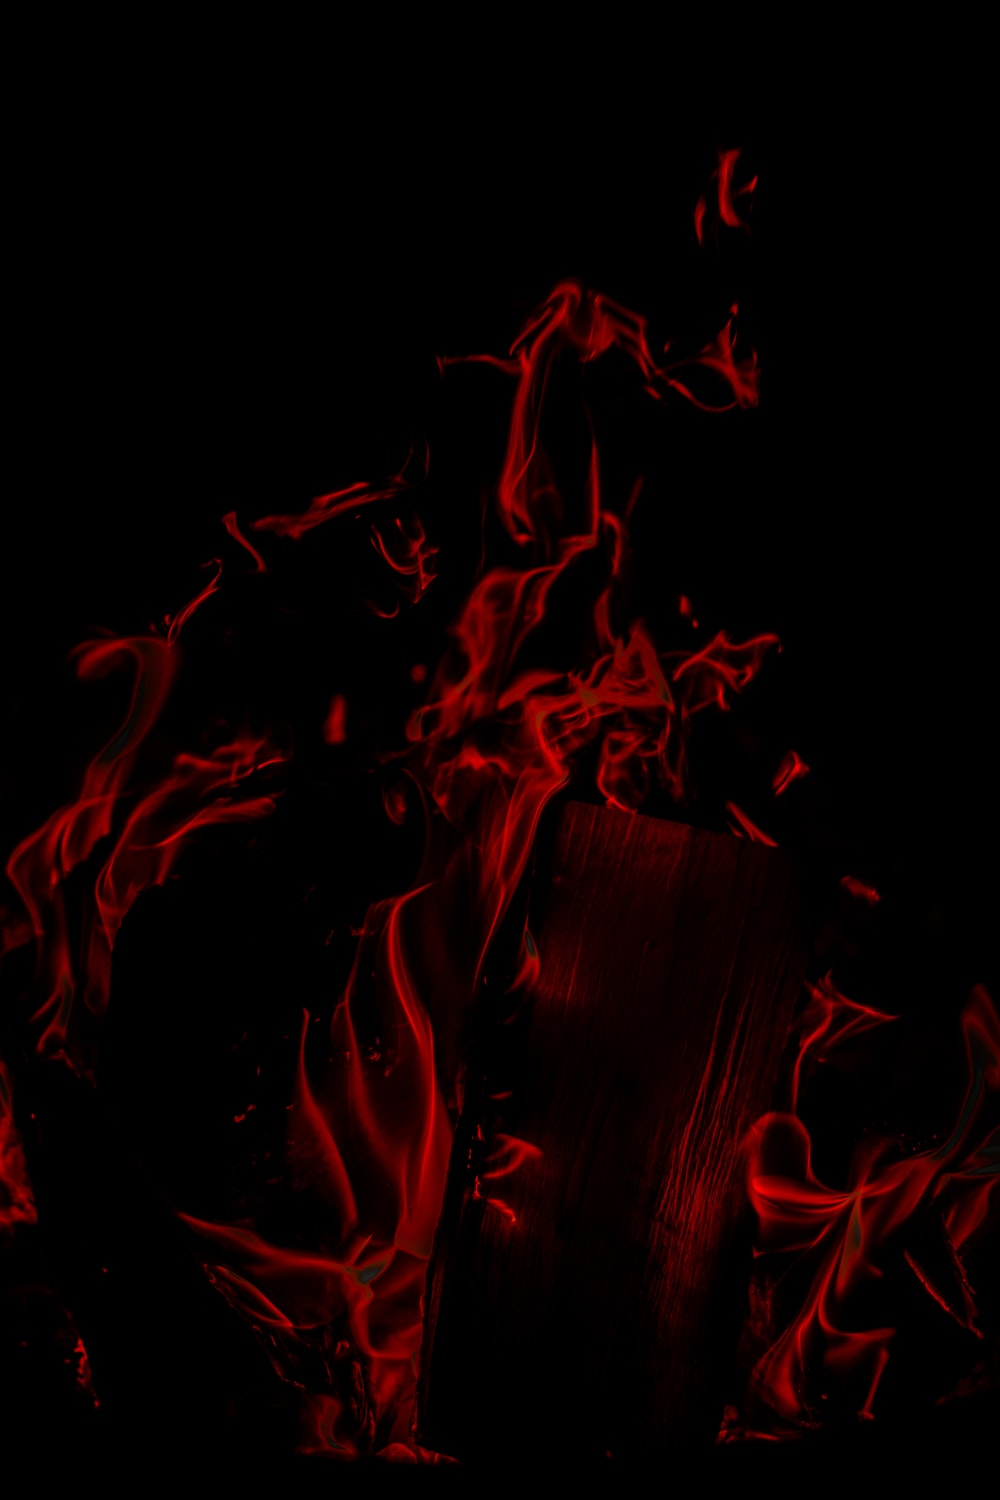 red and black fire digital wallpaper